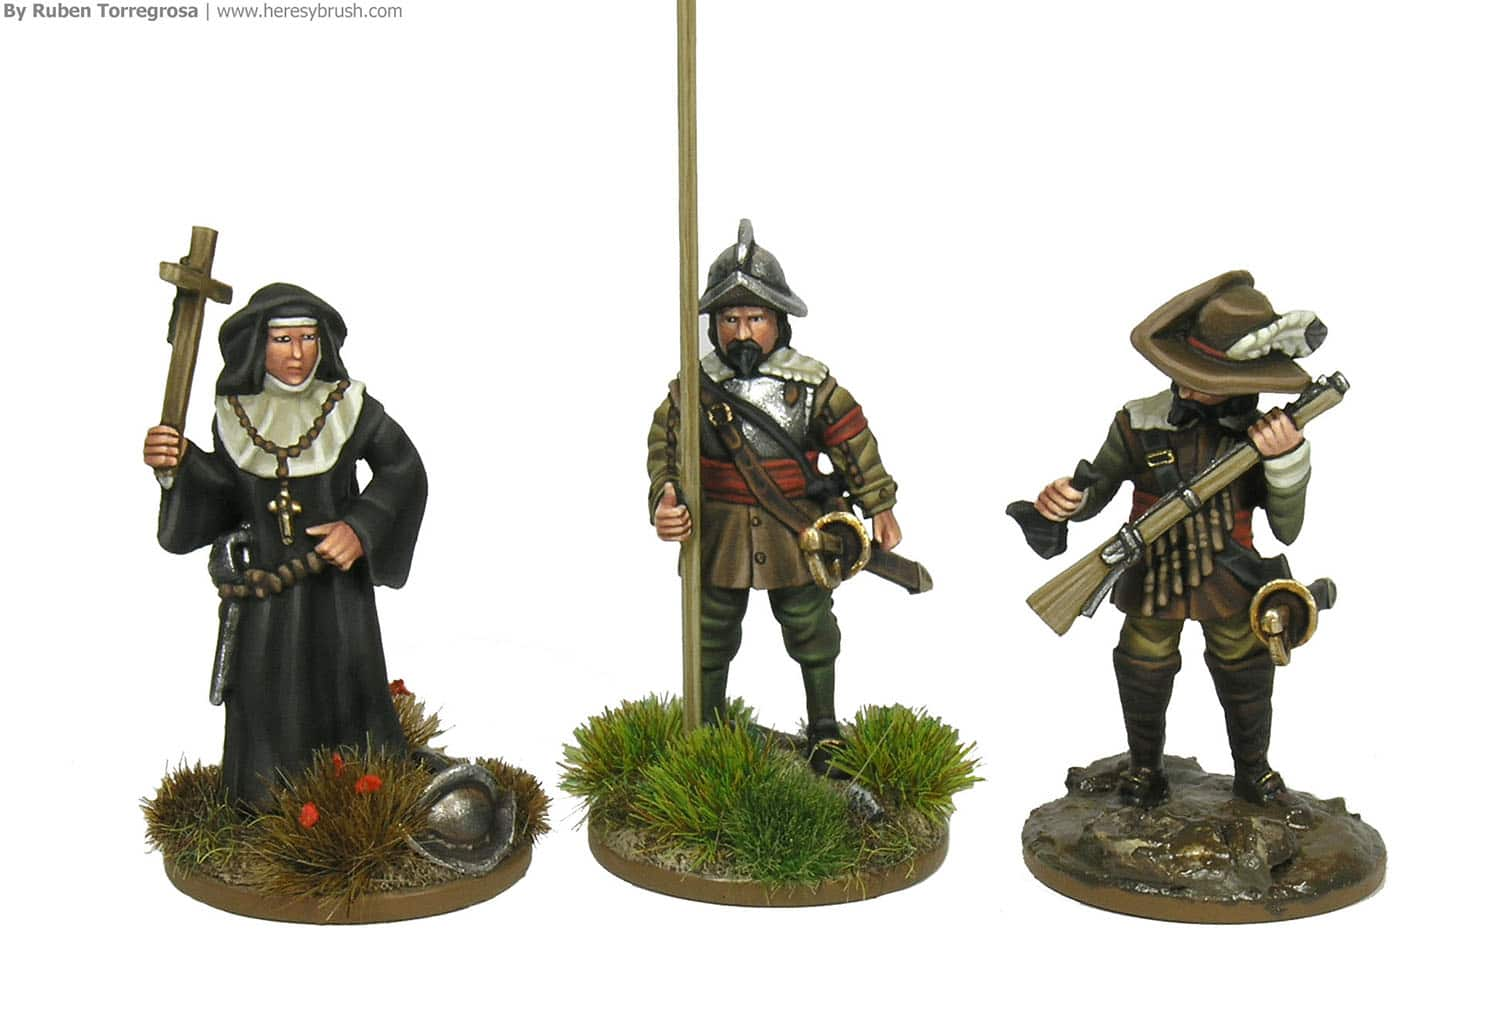 Como pintar Tercios españoles (28mm) - How to paint 28mm Spanish Tercios